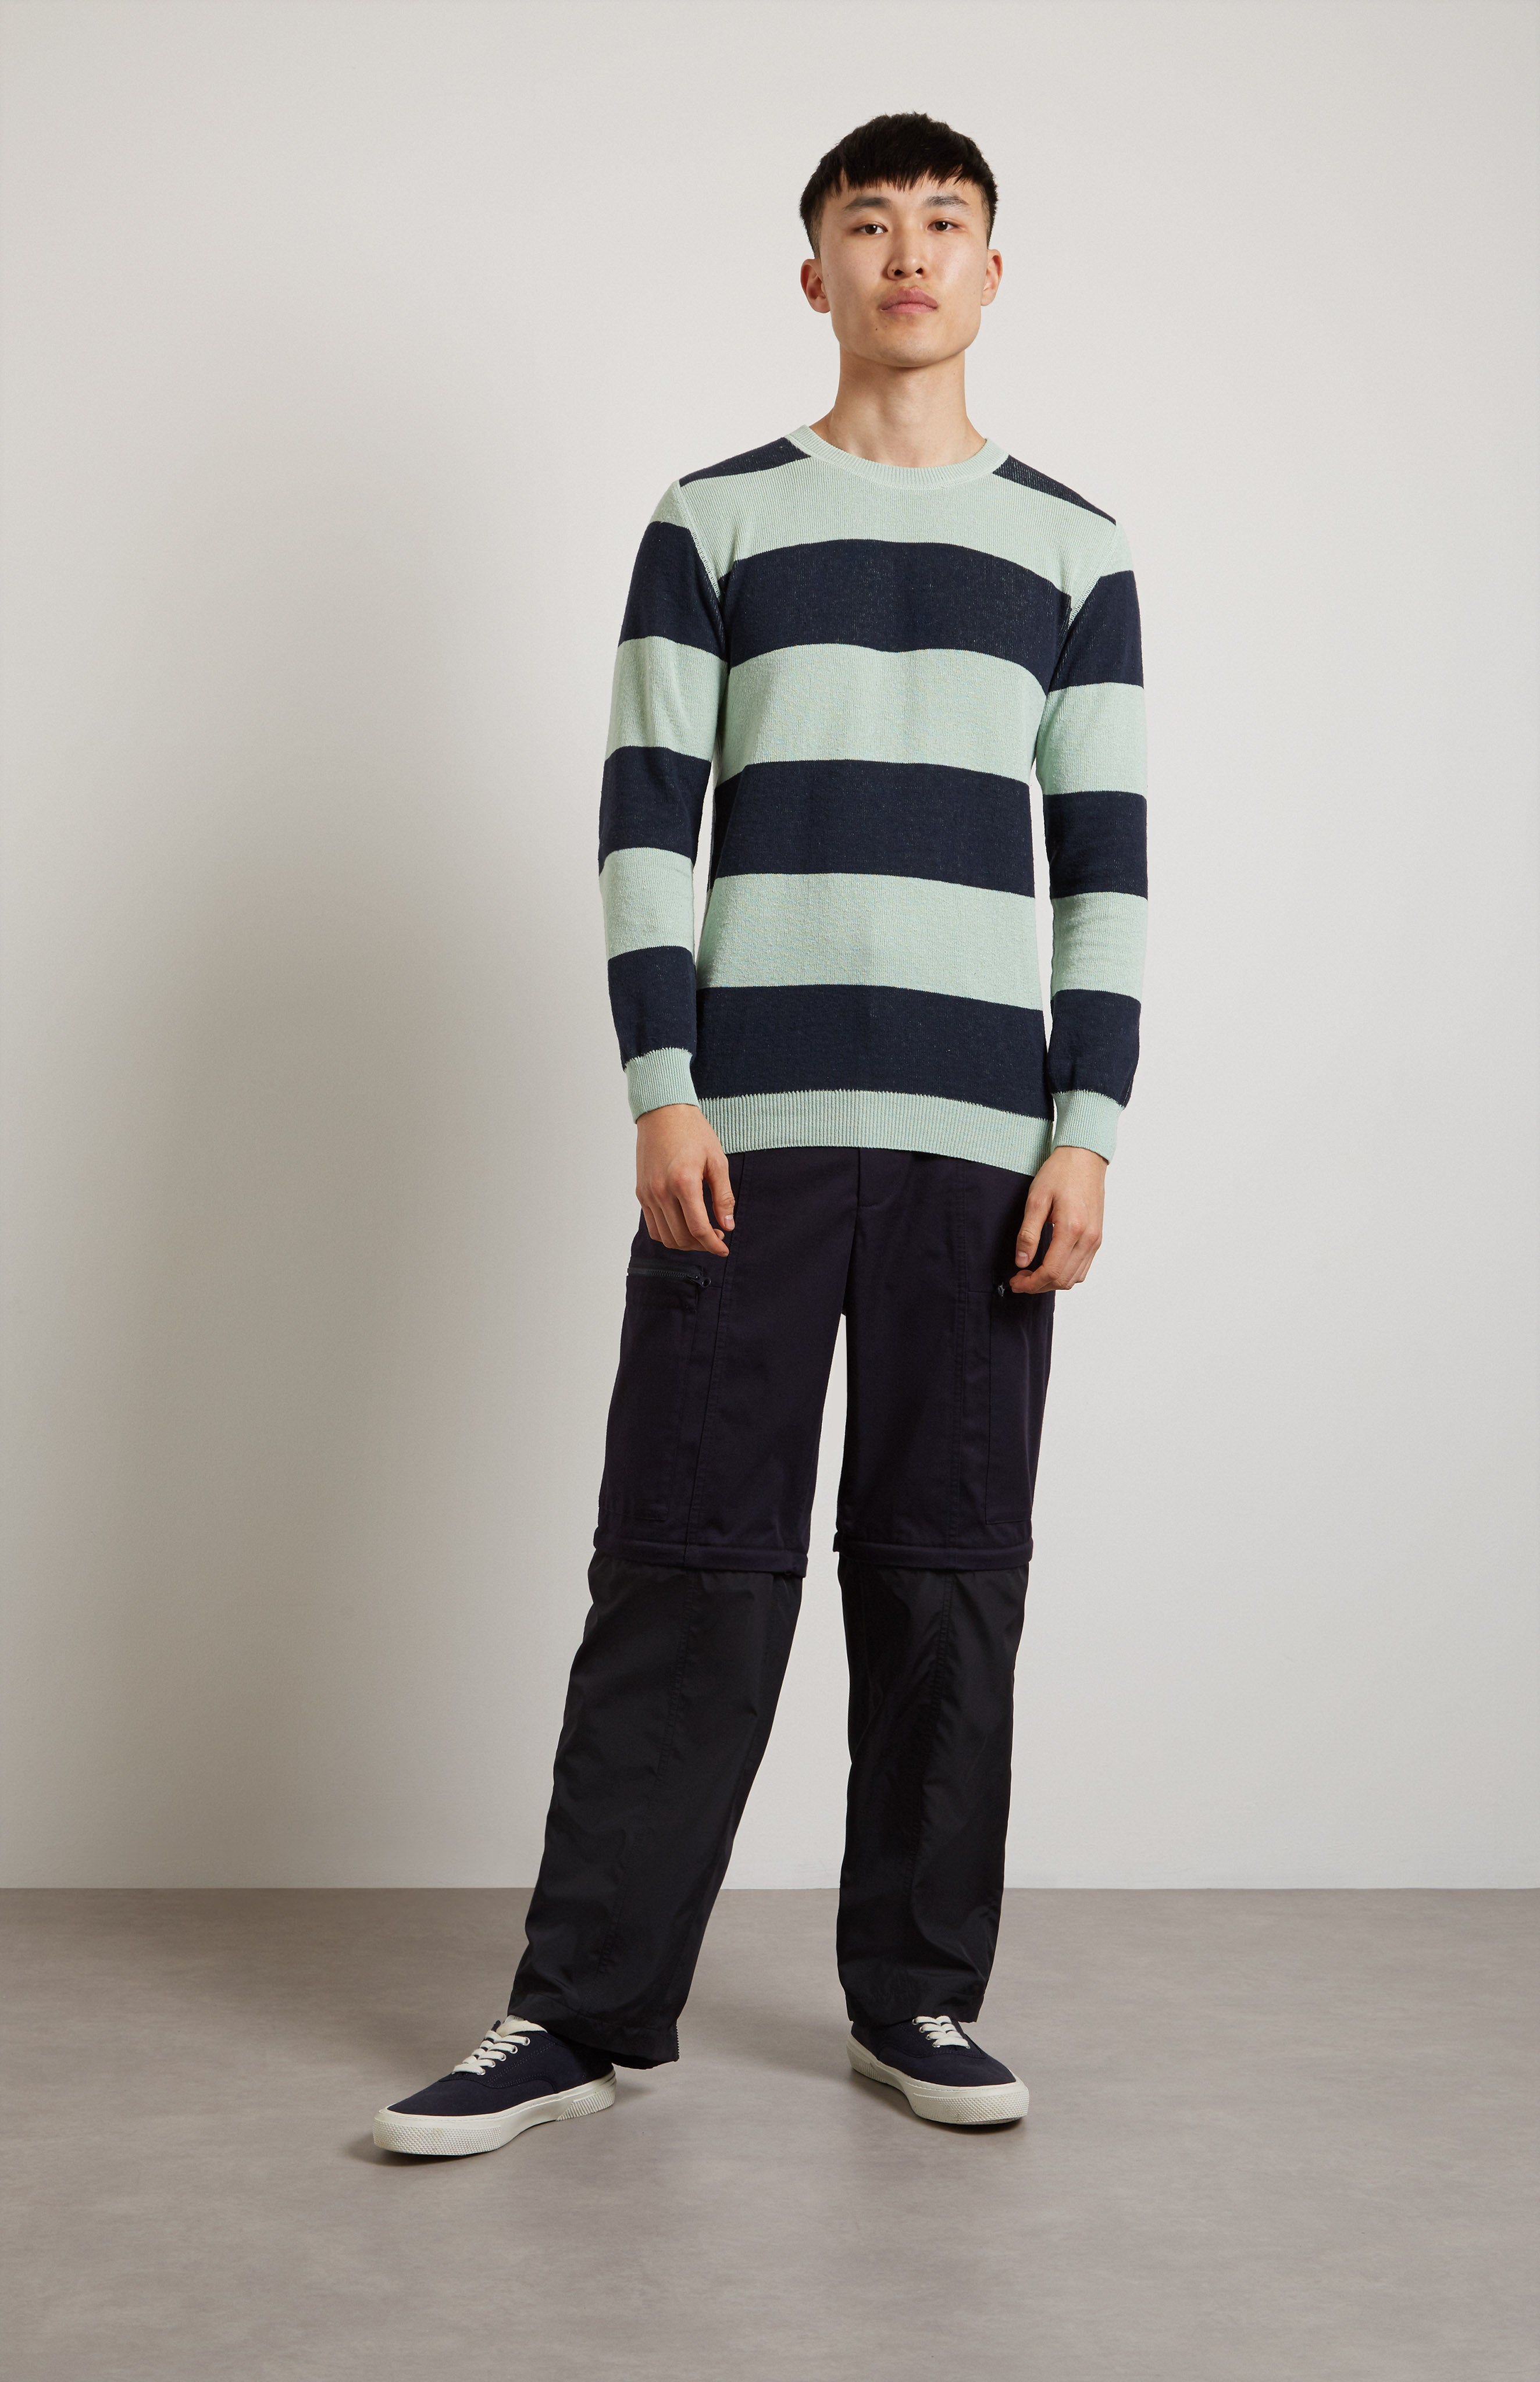 Textured Striped Cotton Jumper In Green/Blue